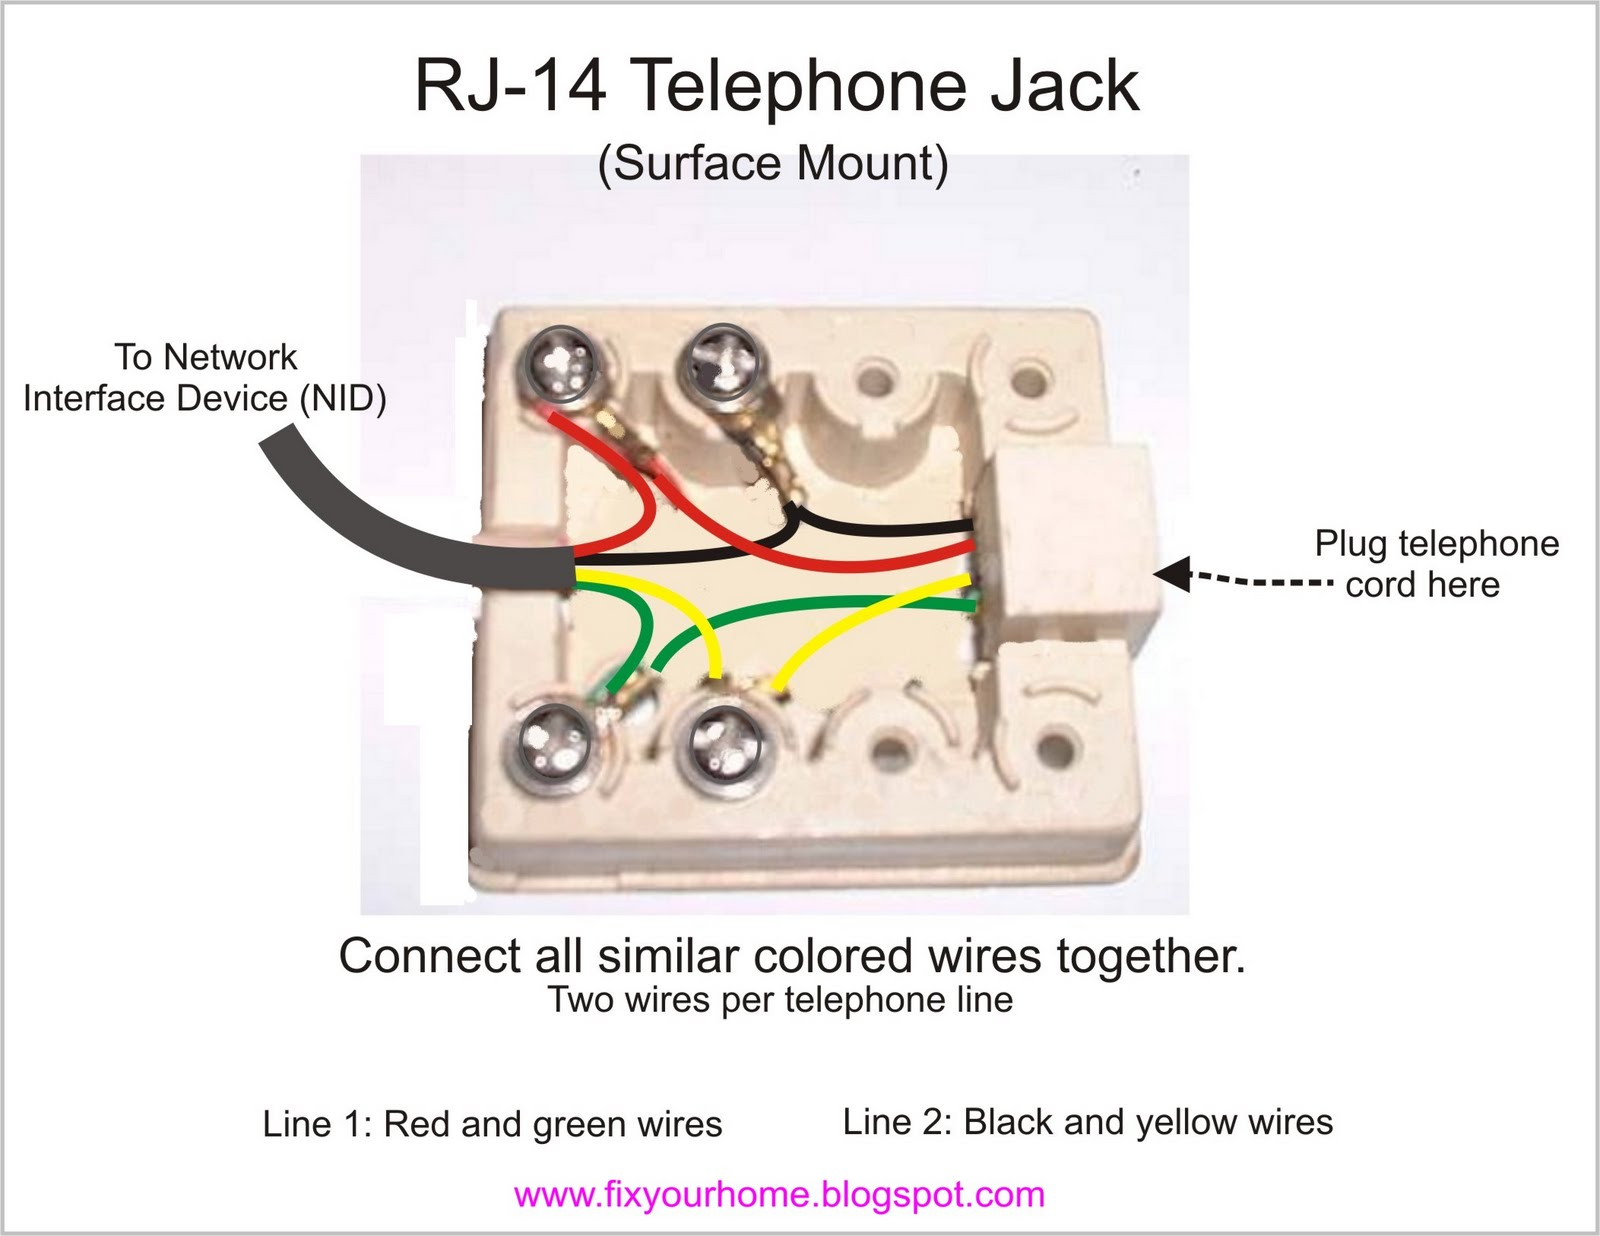 diagram] rj11 telephone jack wiring diagram full version hd quality wiring  diagram - painlesswiring.lexanesirac.fr  painlesswiring.lexanesirac.fr